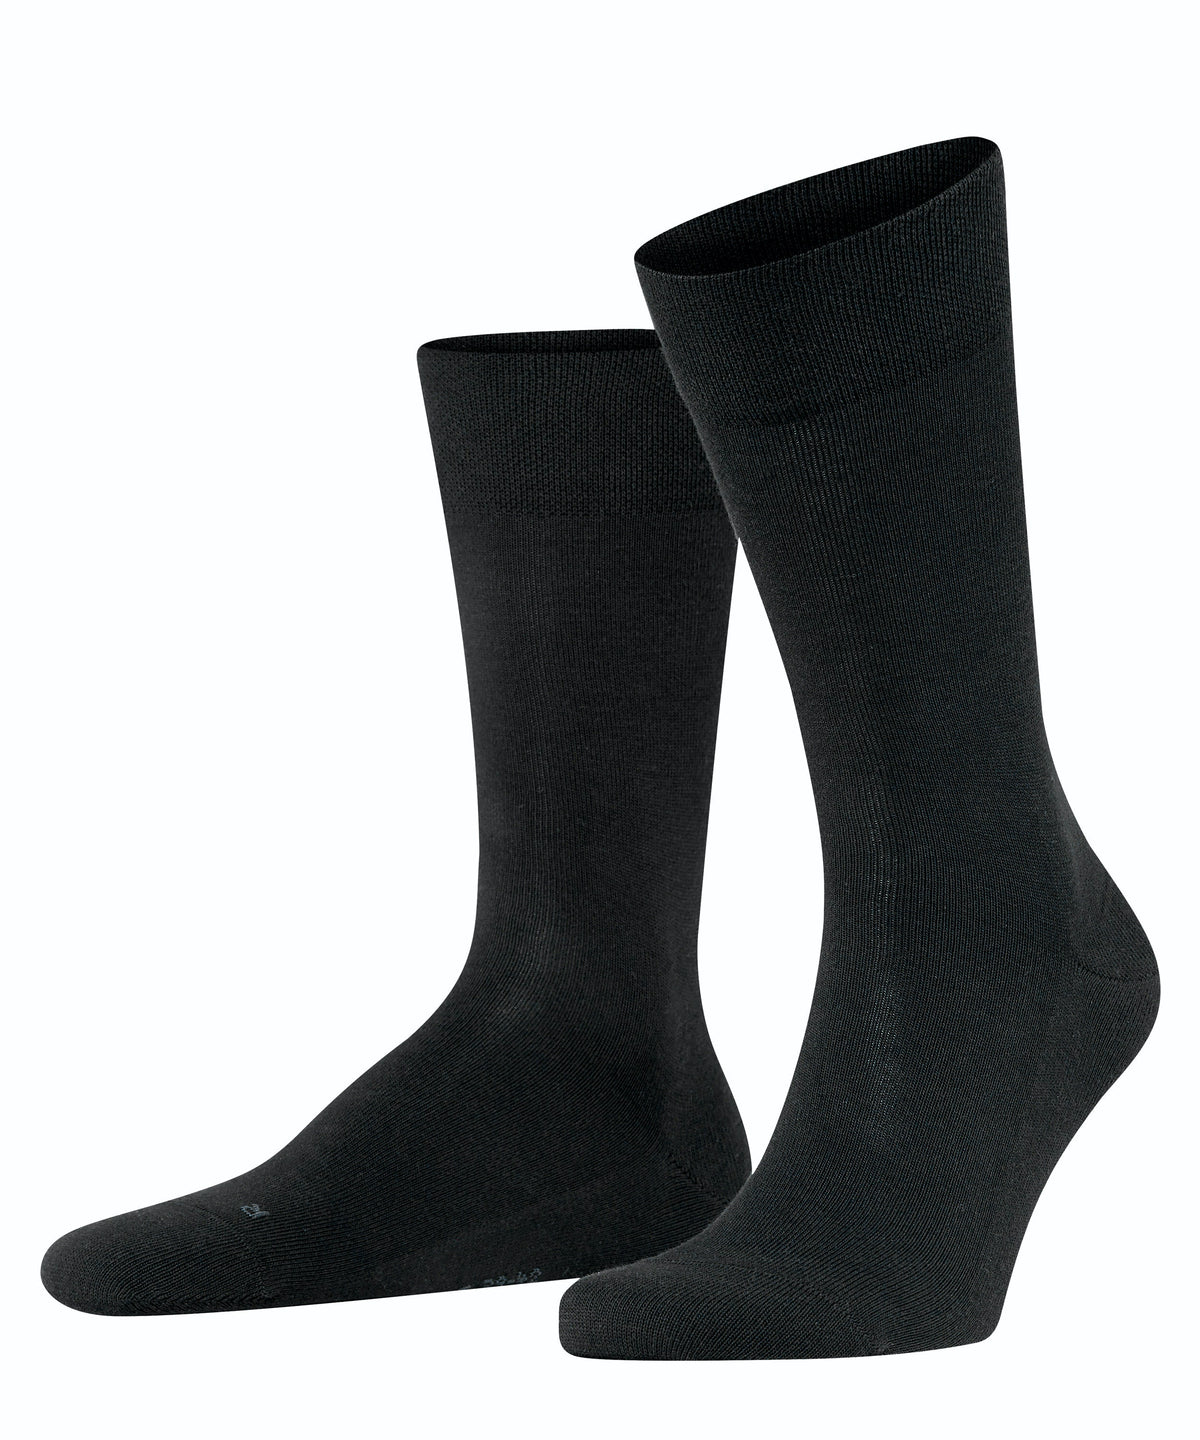 FALKE Sensitive London Men's Socks